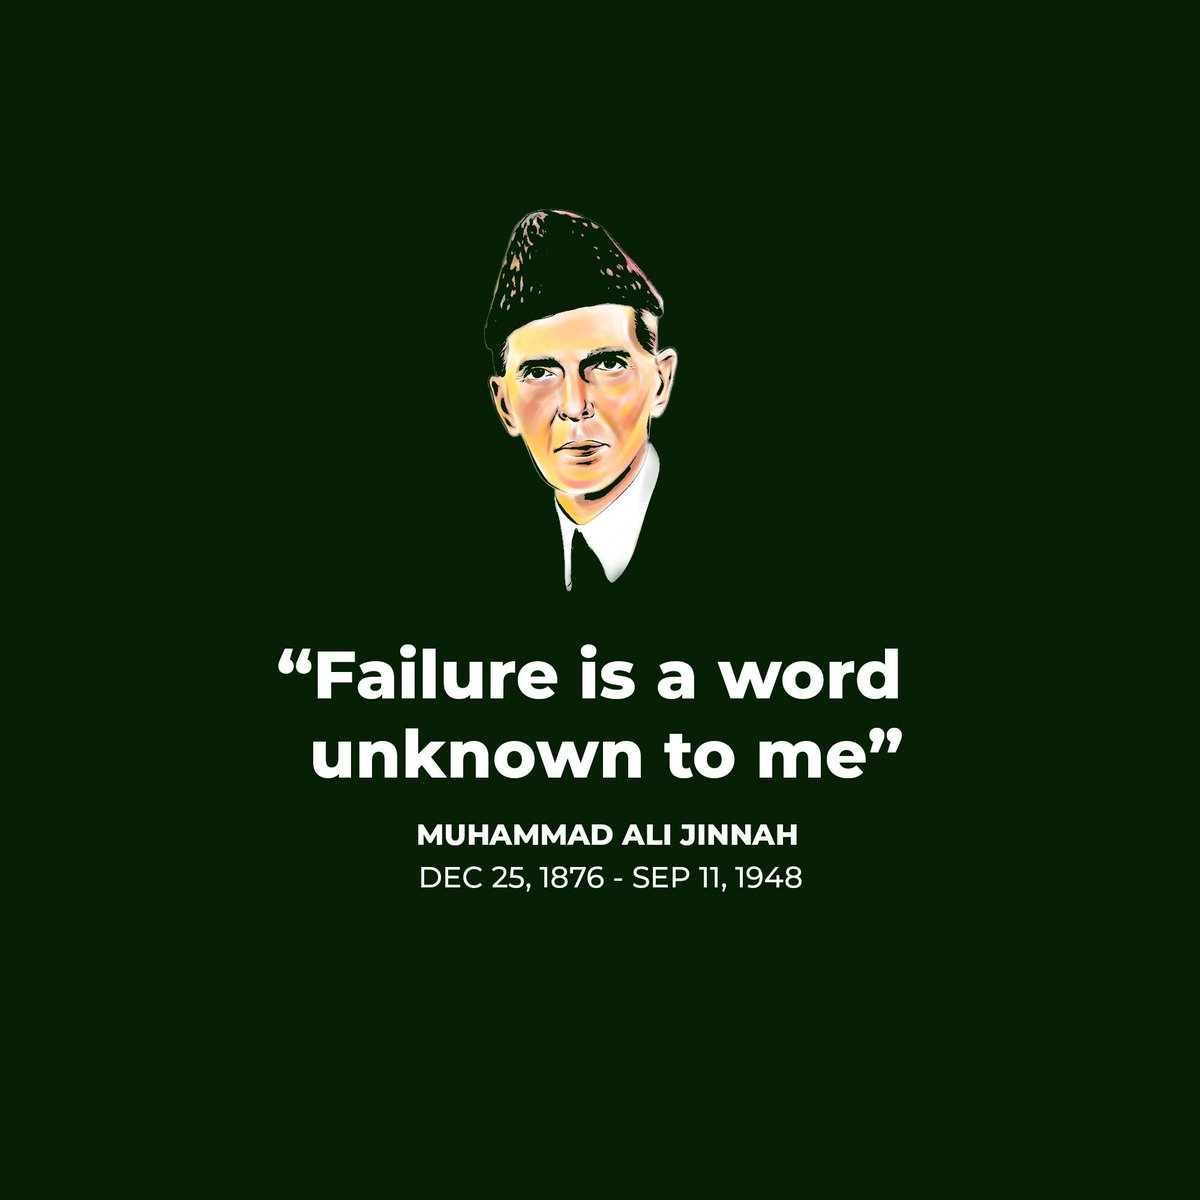 Today we observe the 71st death anniversary of Jinnah. Pakistanis, specially the youth should learn a lot from the wisdom of our great leader.#QuaideAzam #WednesdayThoughts